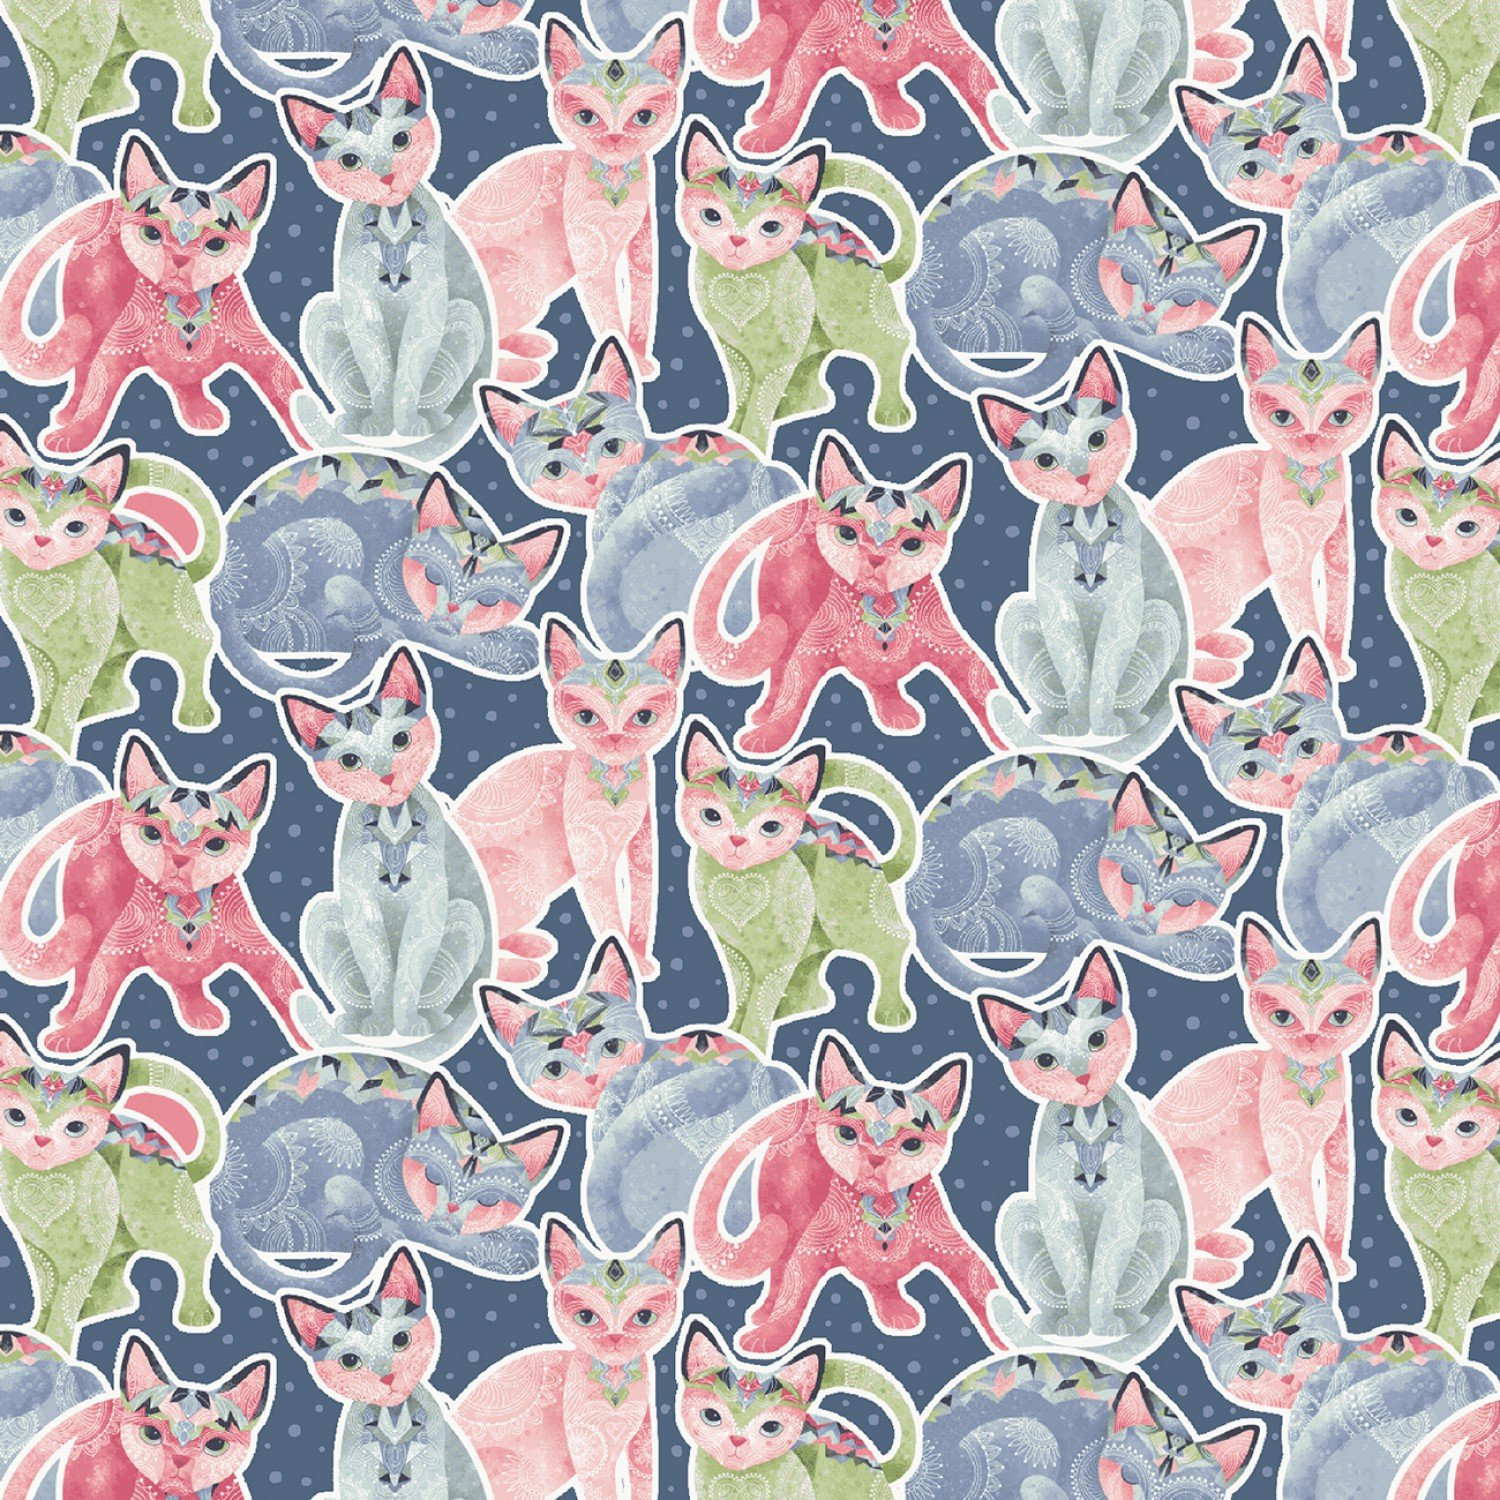 SE-Fancy Cats 5293-72 Multi - Packed Cats